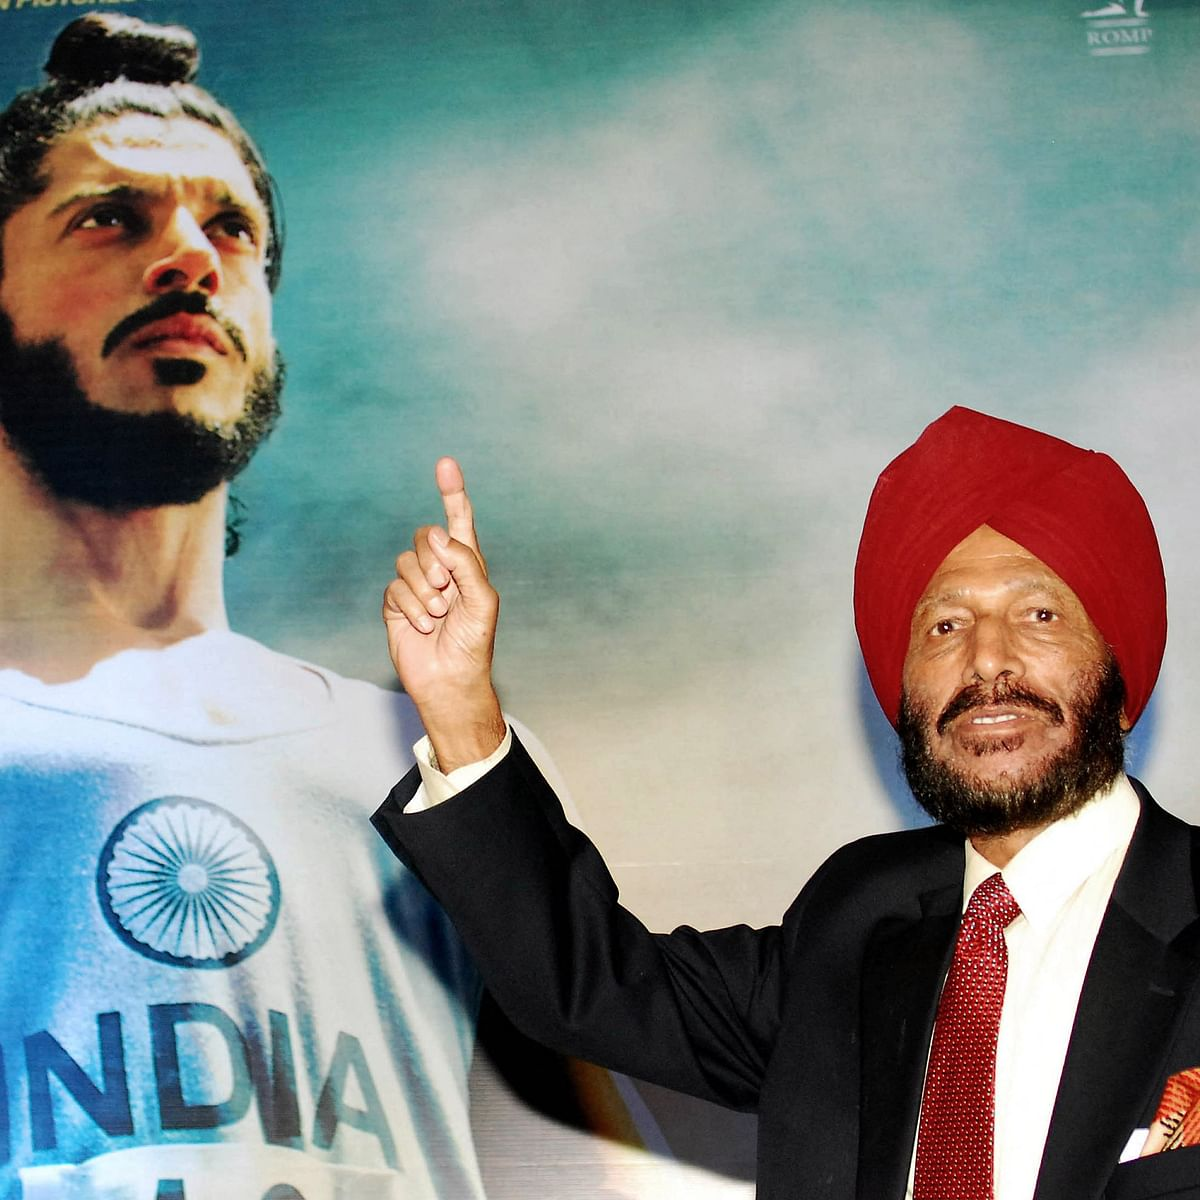 'And he flew away': SRK, Akshay Kumar, Taapsee Pannu and other celebs mourn demise of Milkha Singh